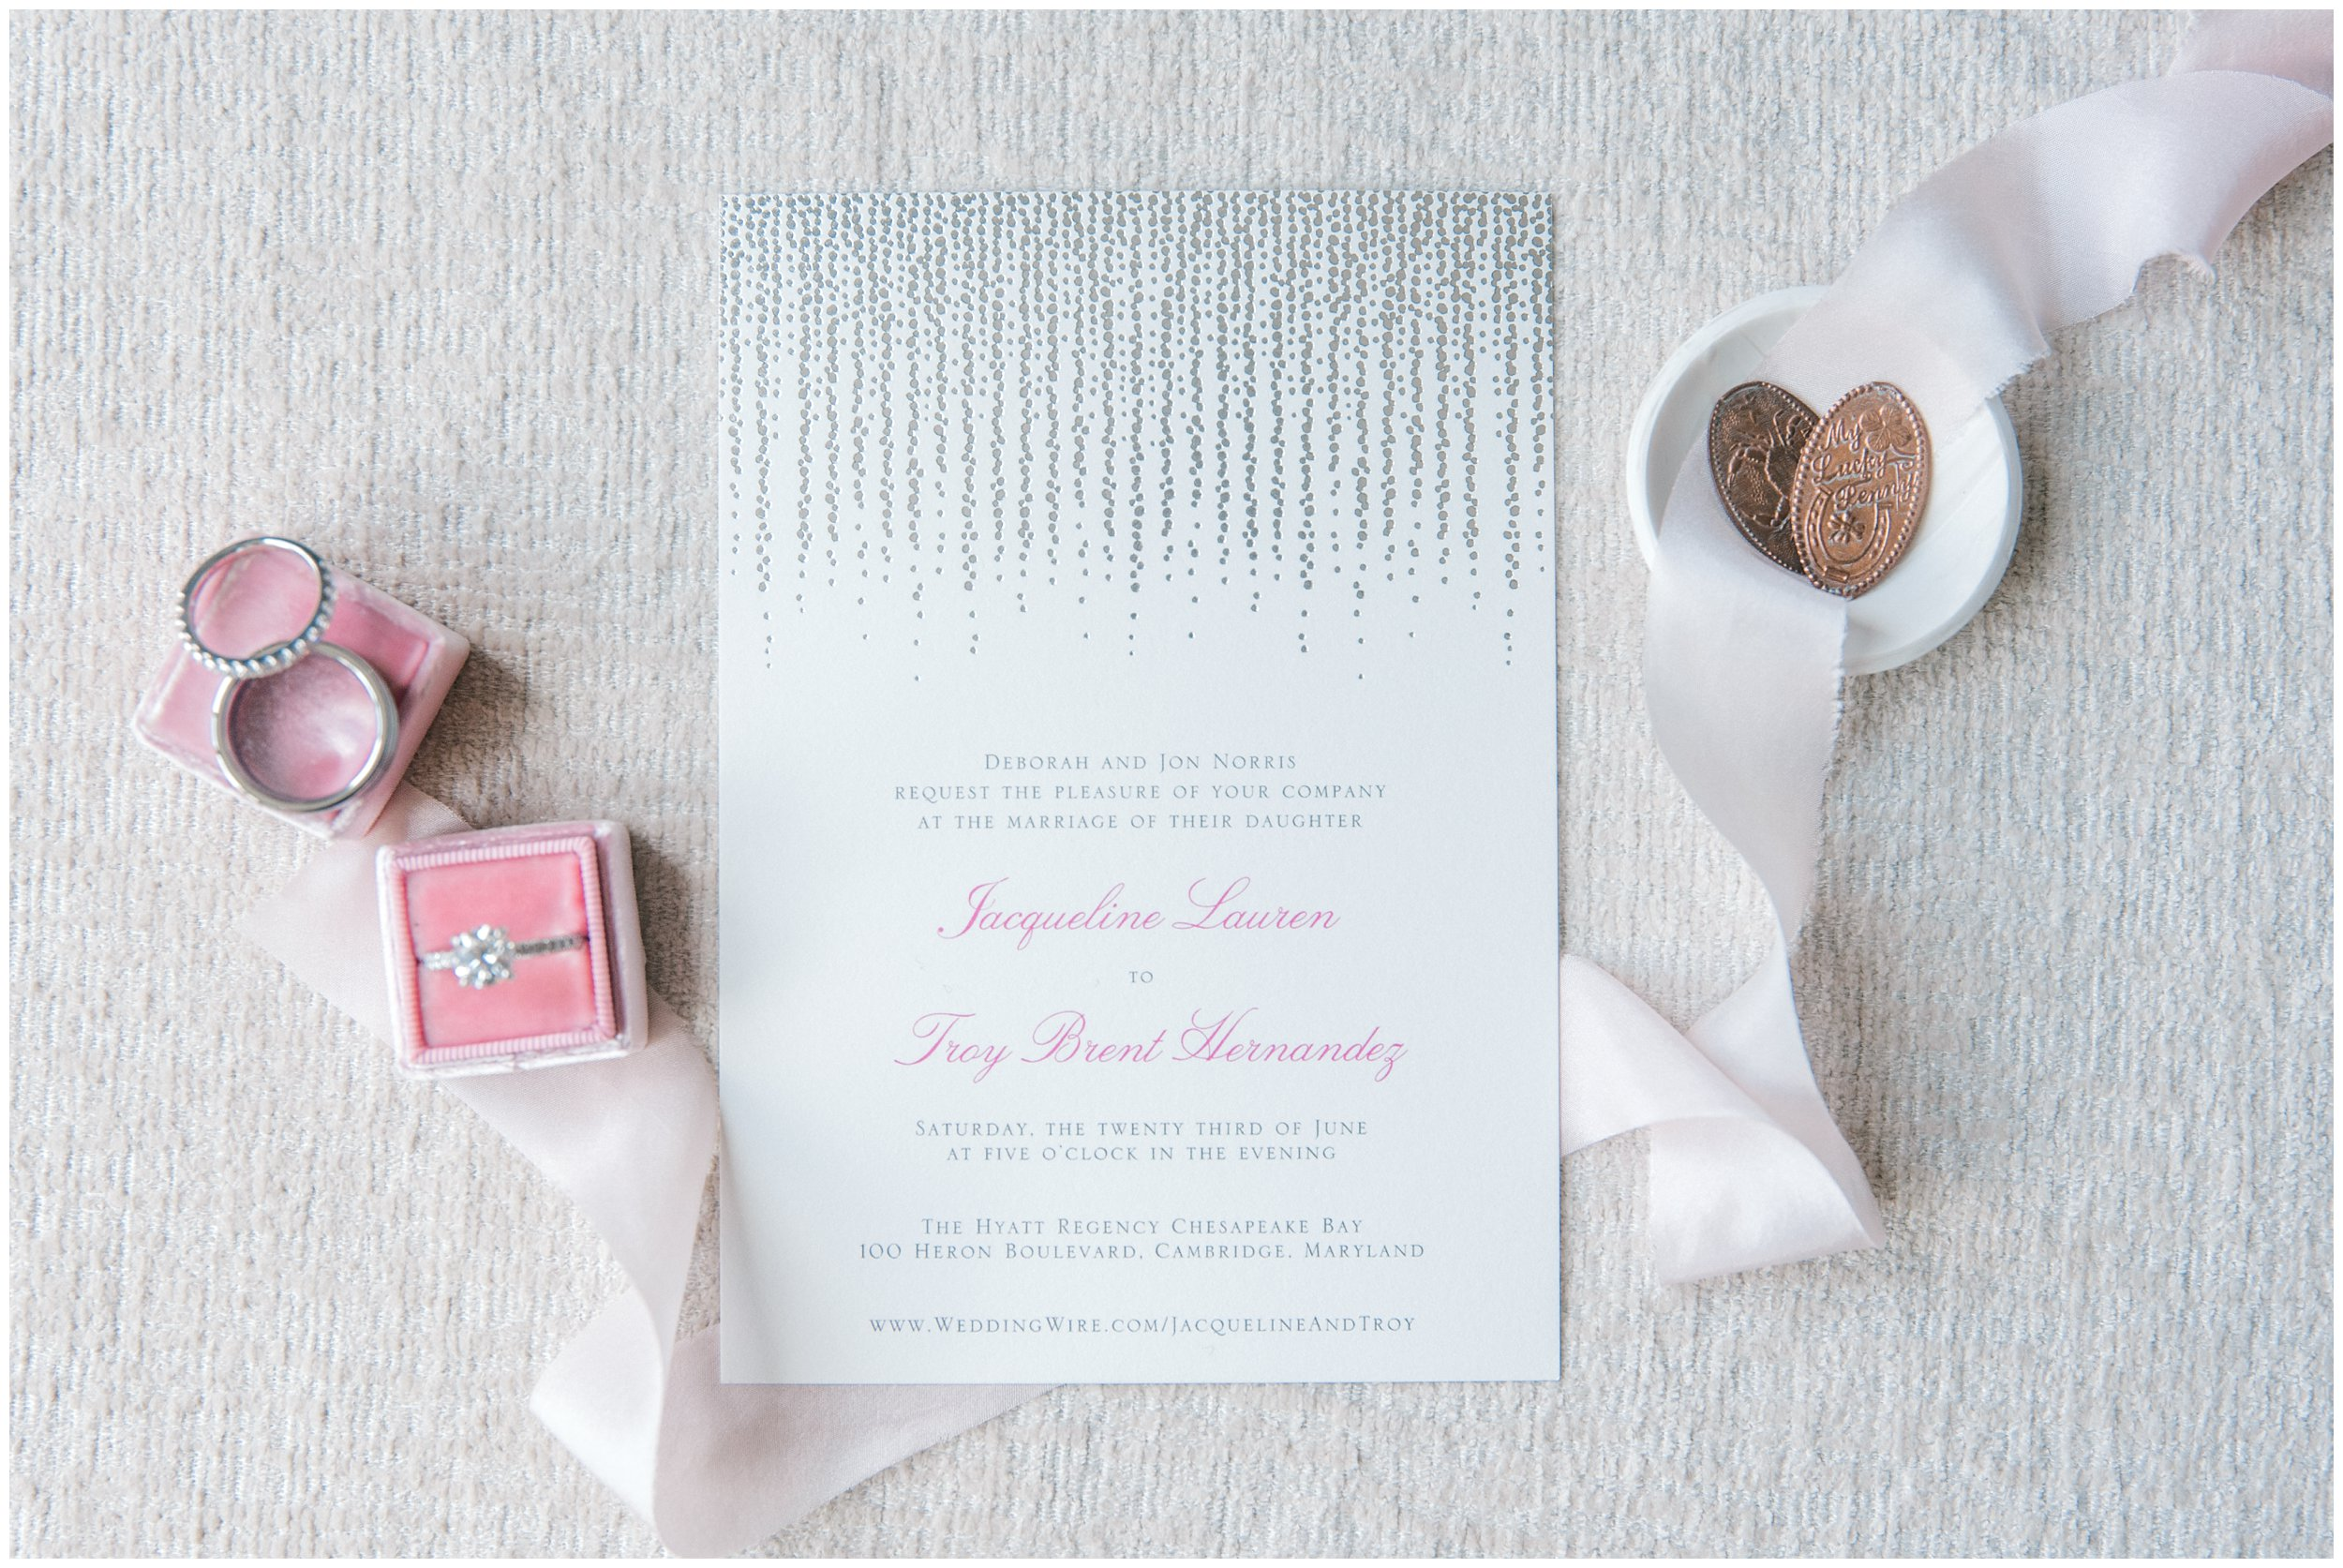 Hyatt Regency Chesapeake Bay Wedding stationery